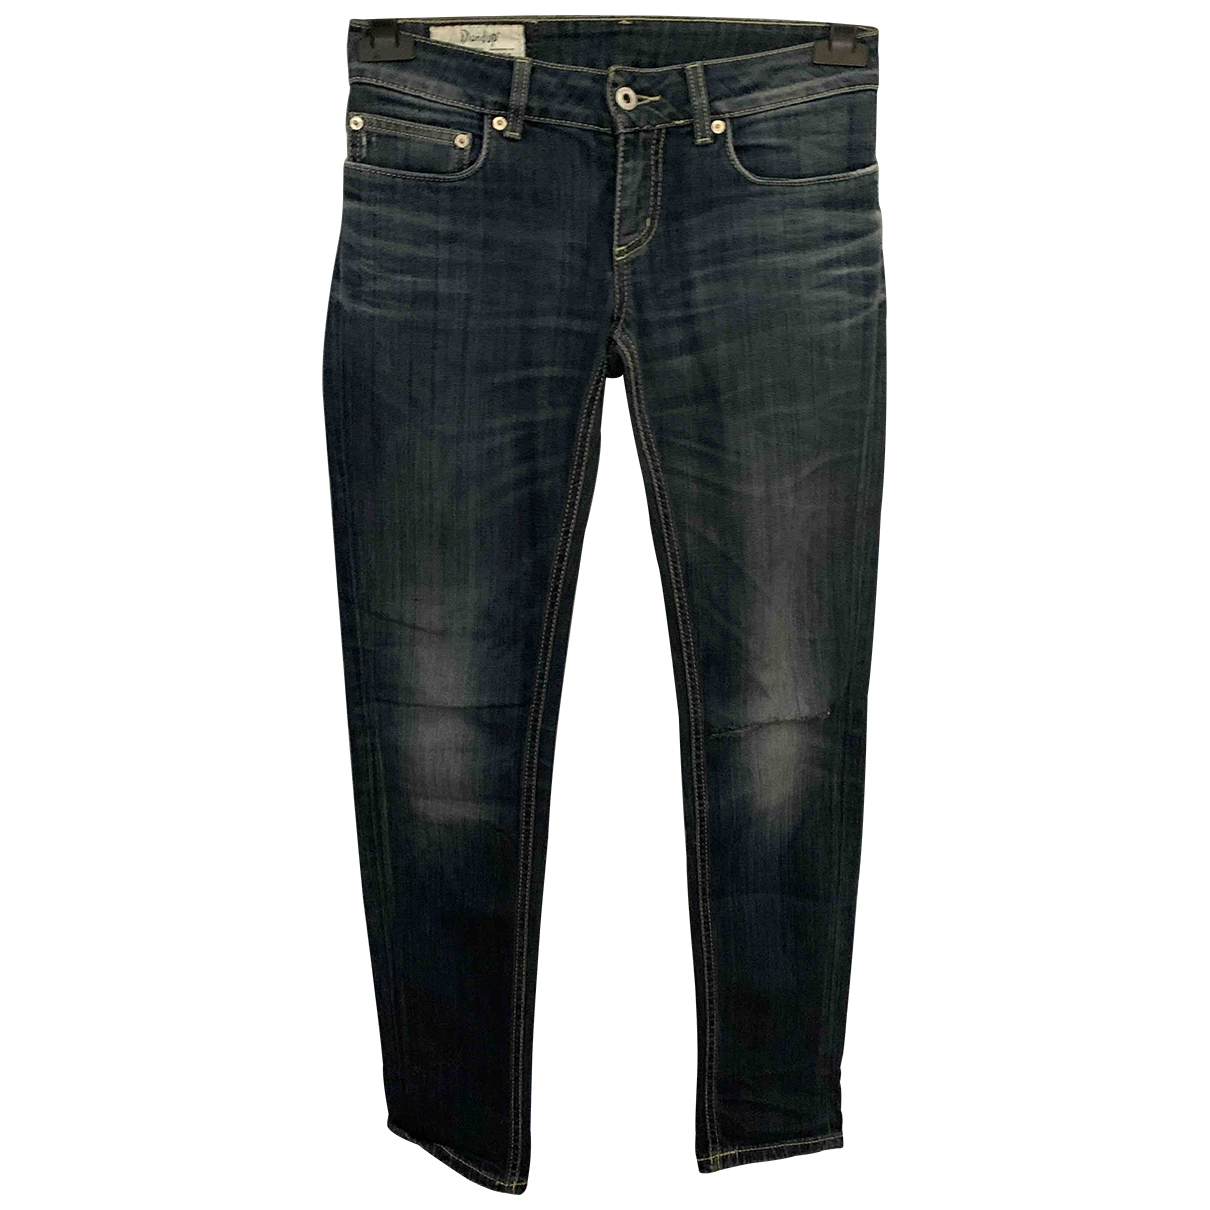 Dondup \N Cotton - elasthane Jeans for Women 26 US